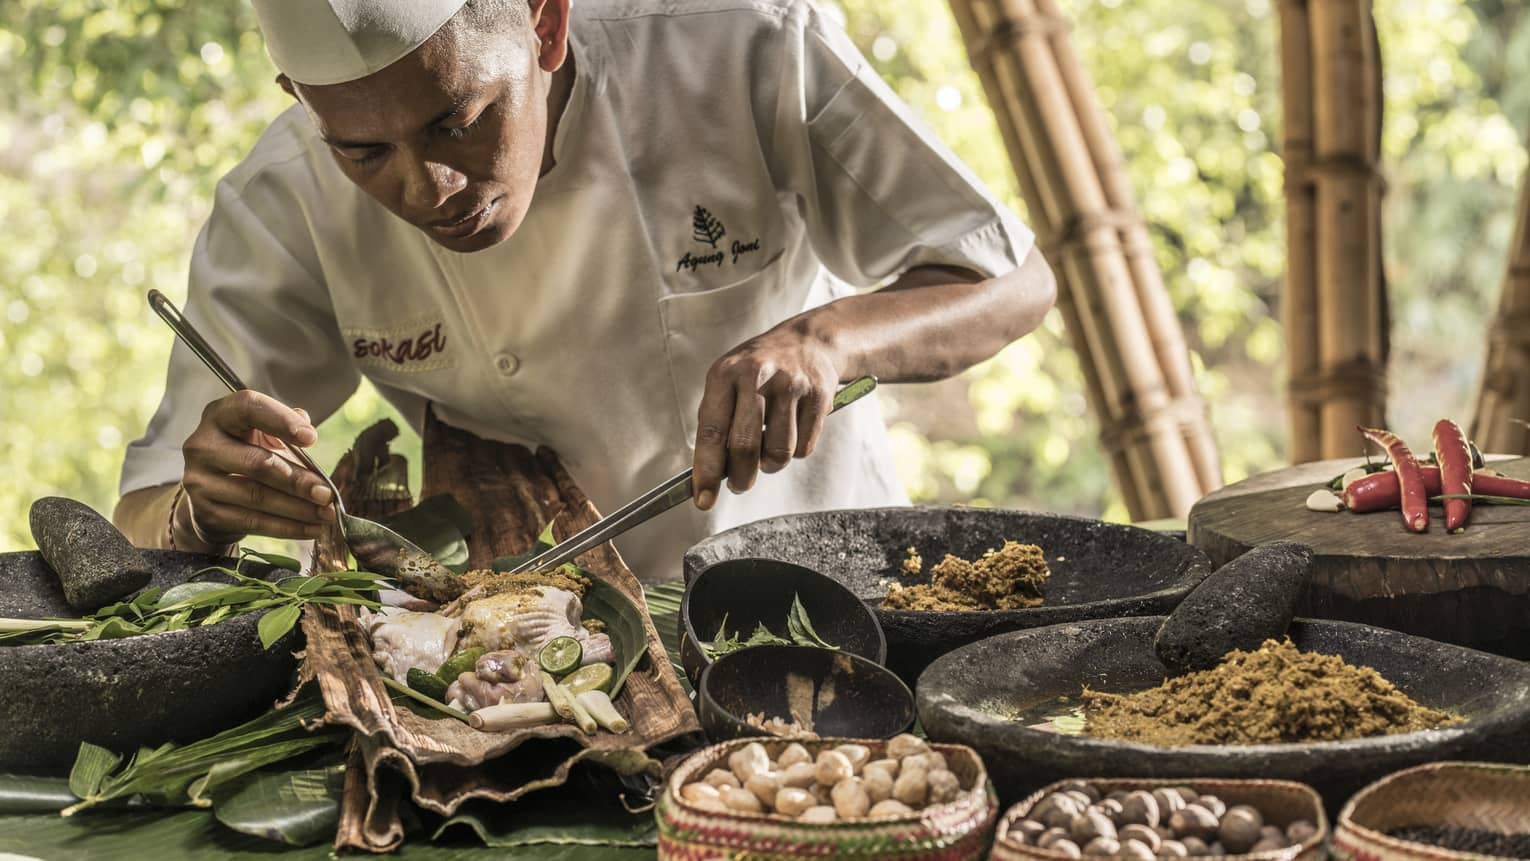 Chef Suta preparing a meal with meat, nuts, vegetables and spices in Bali